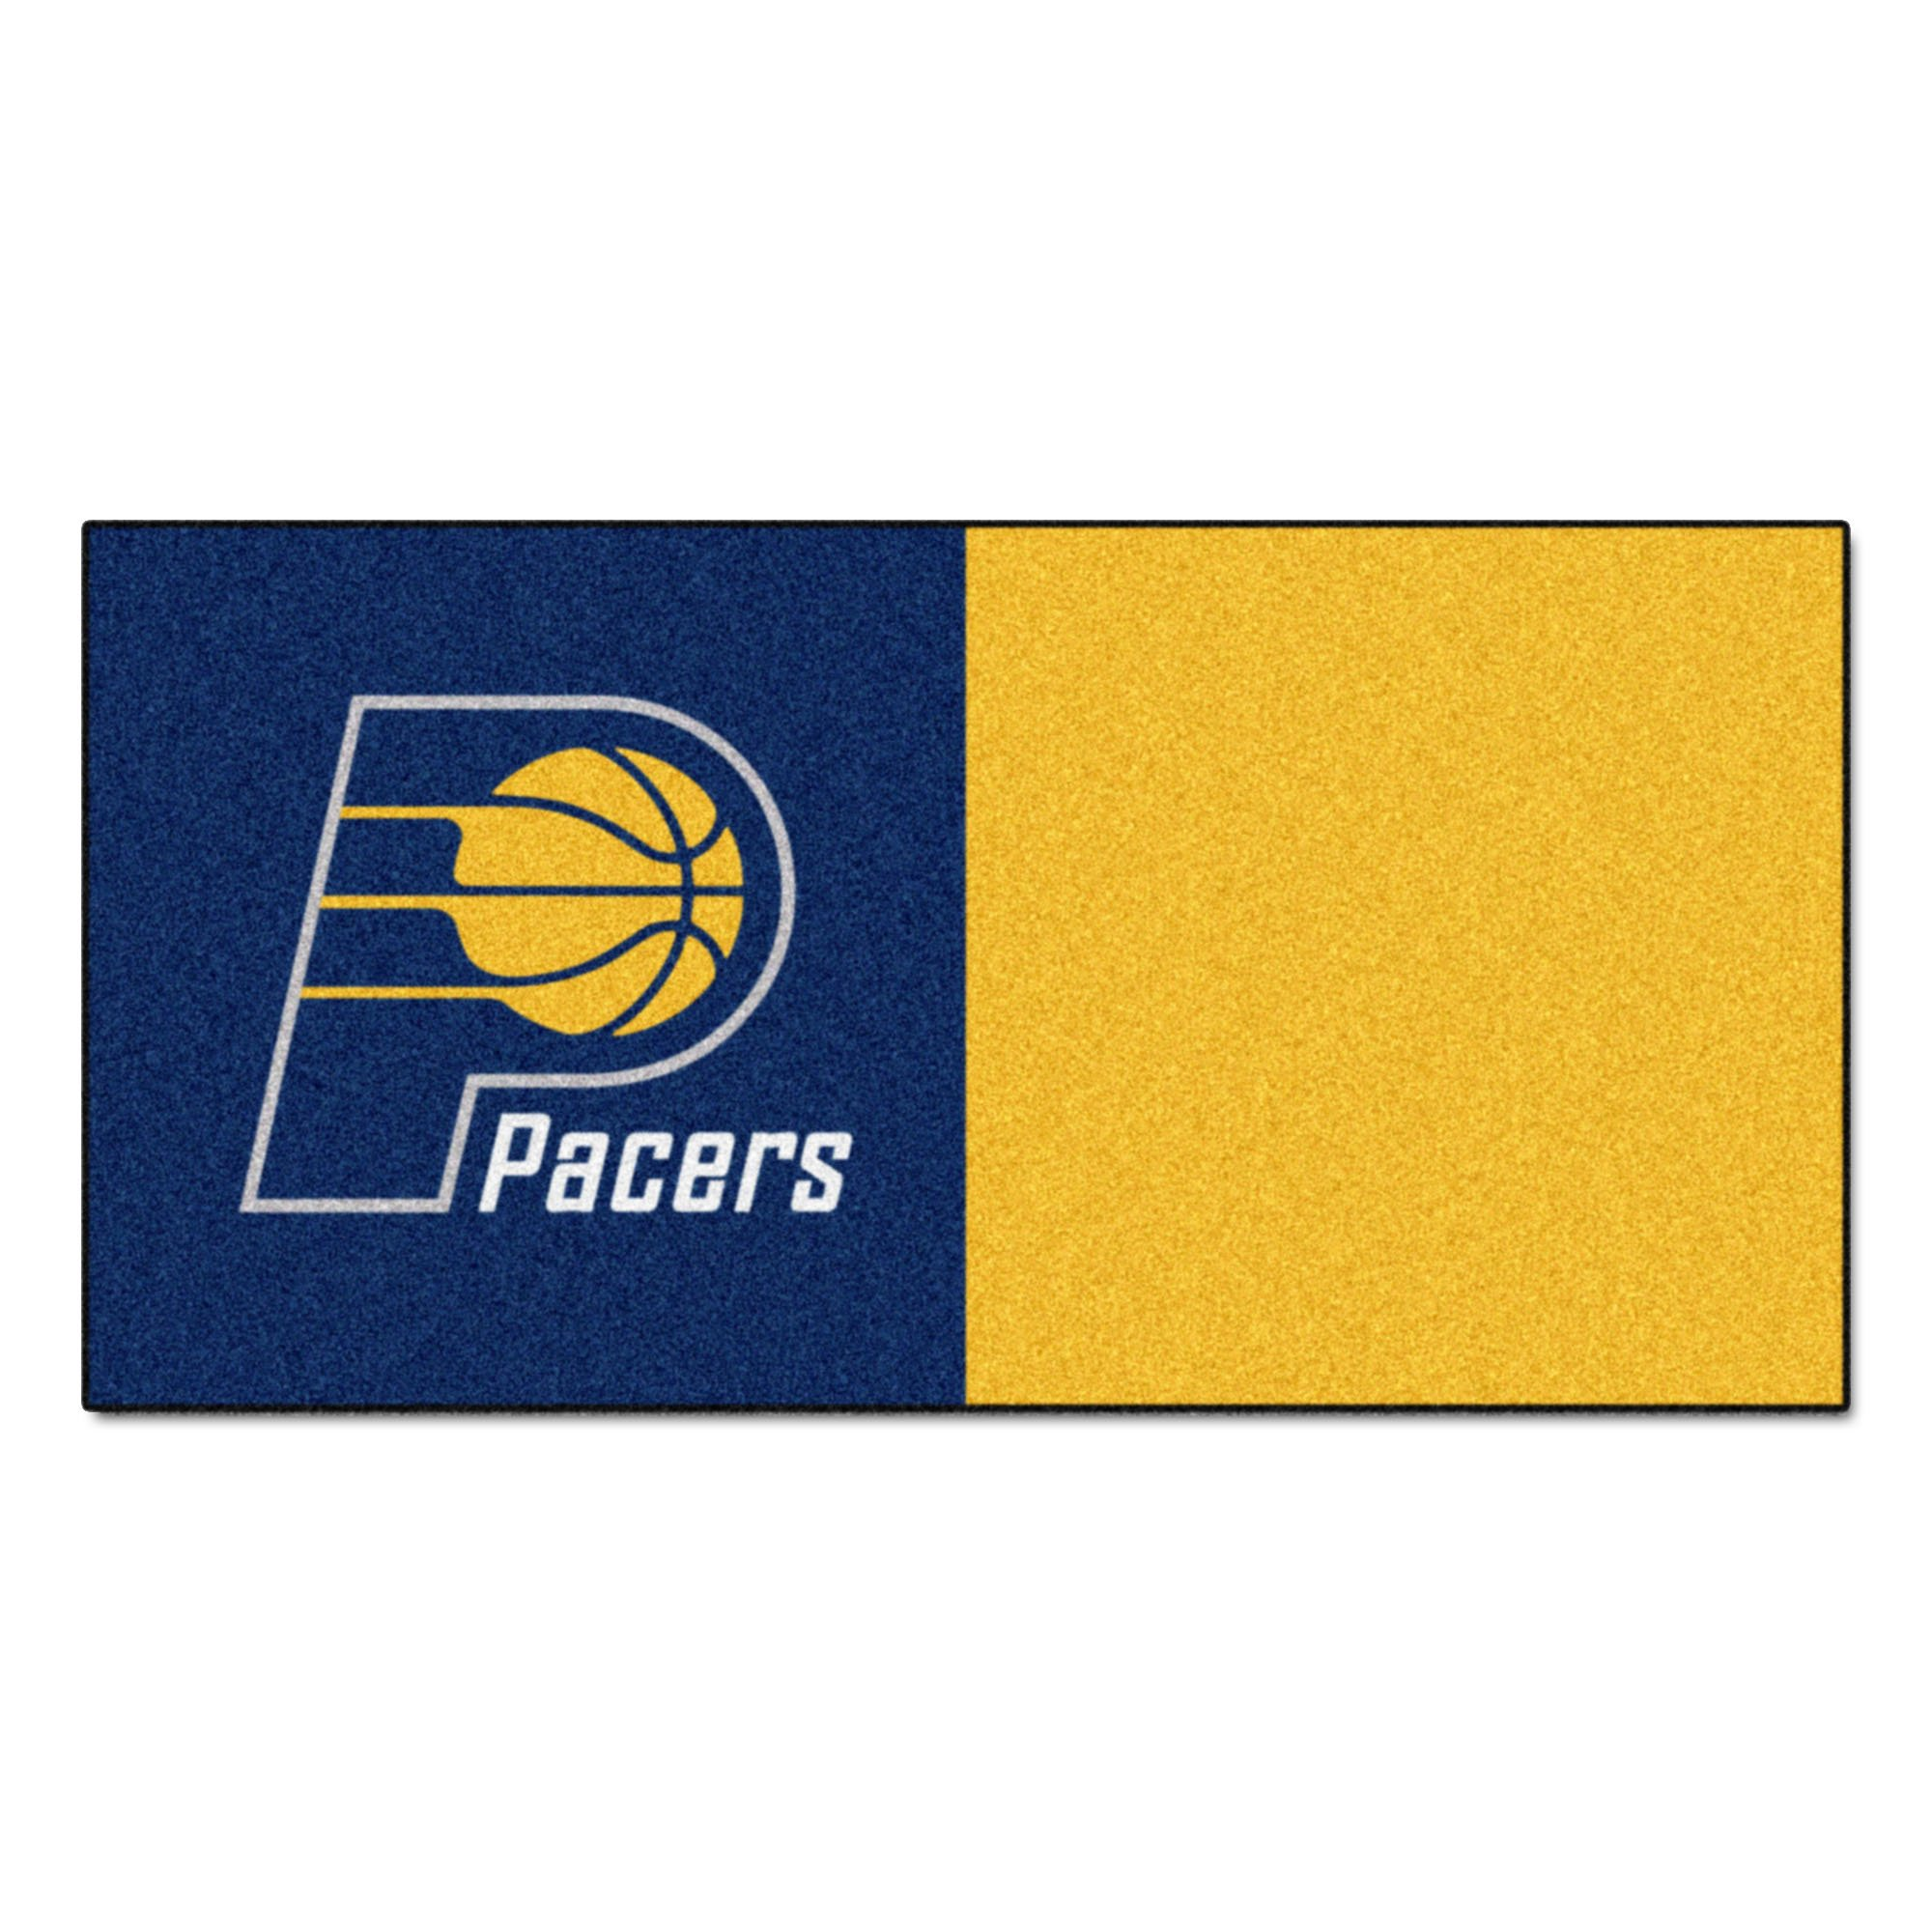 FANMATS NBA Indiana Pacers Nylon Face Team Carpet Tiles